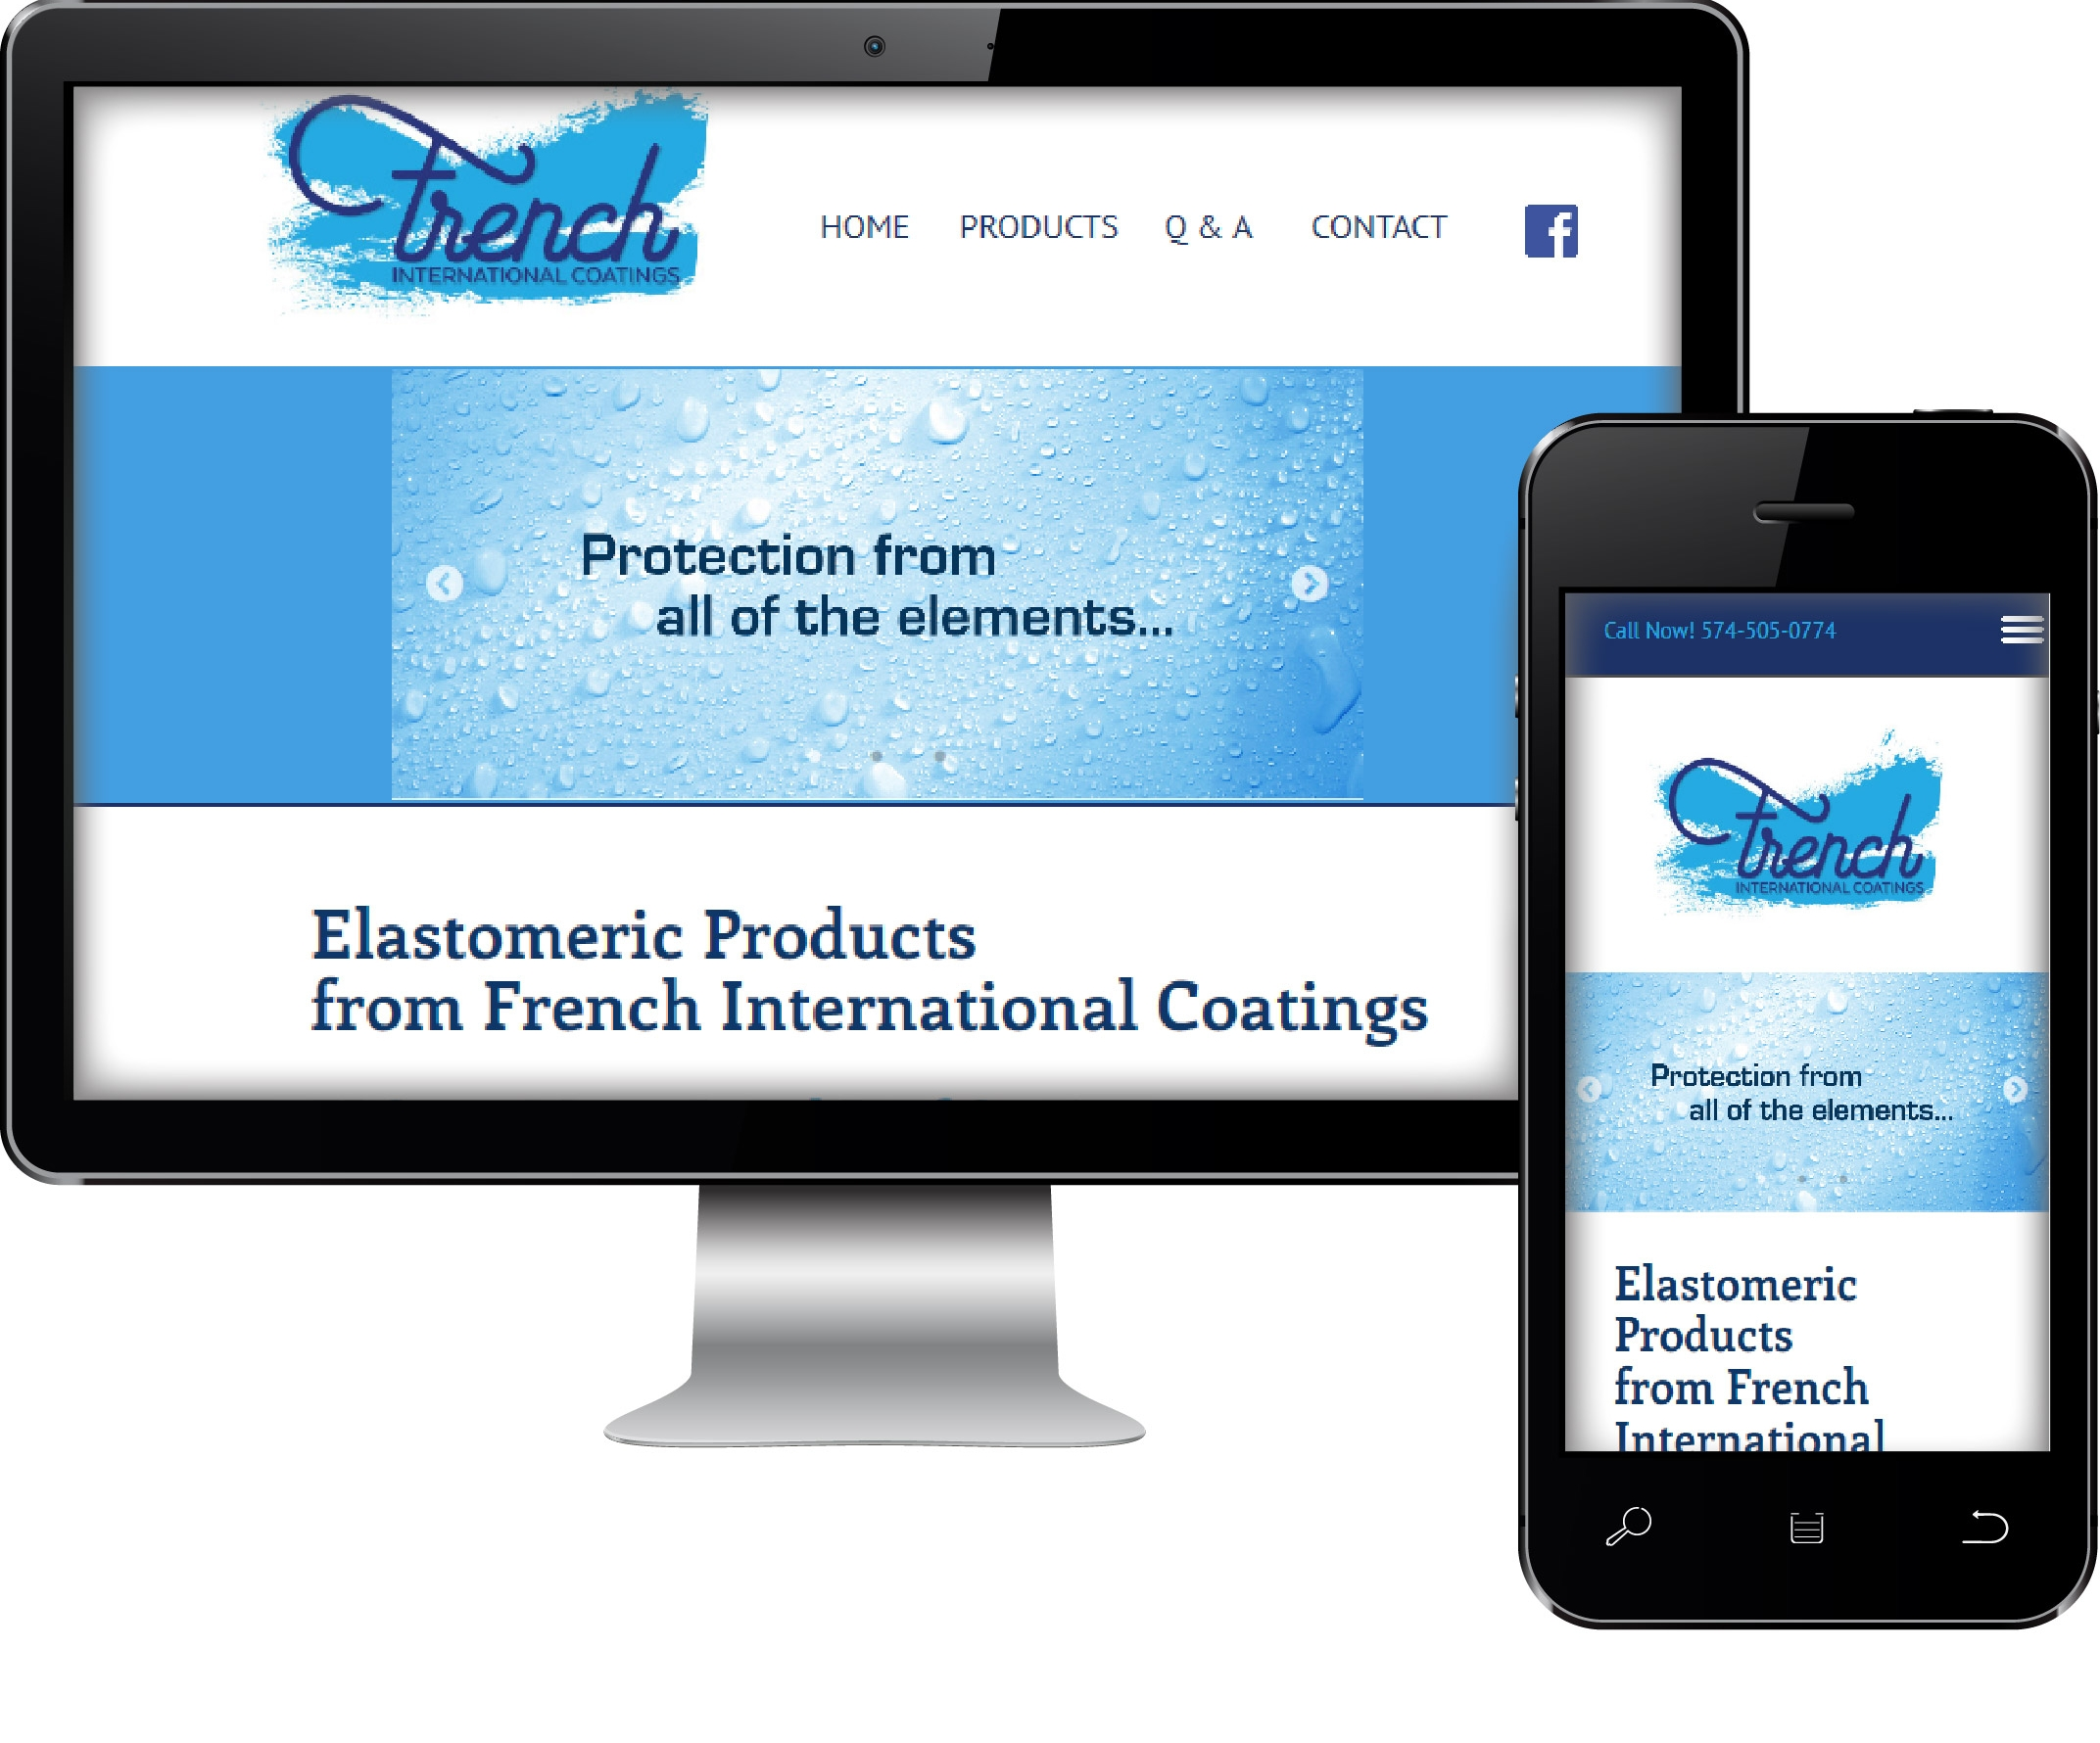 French International Coatings Web Site Design